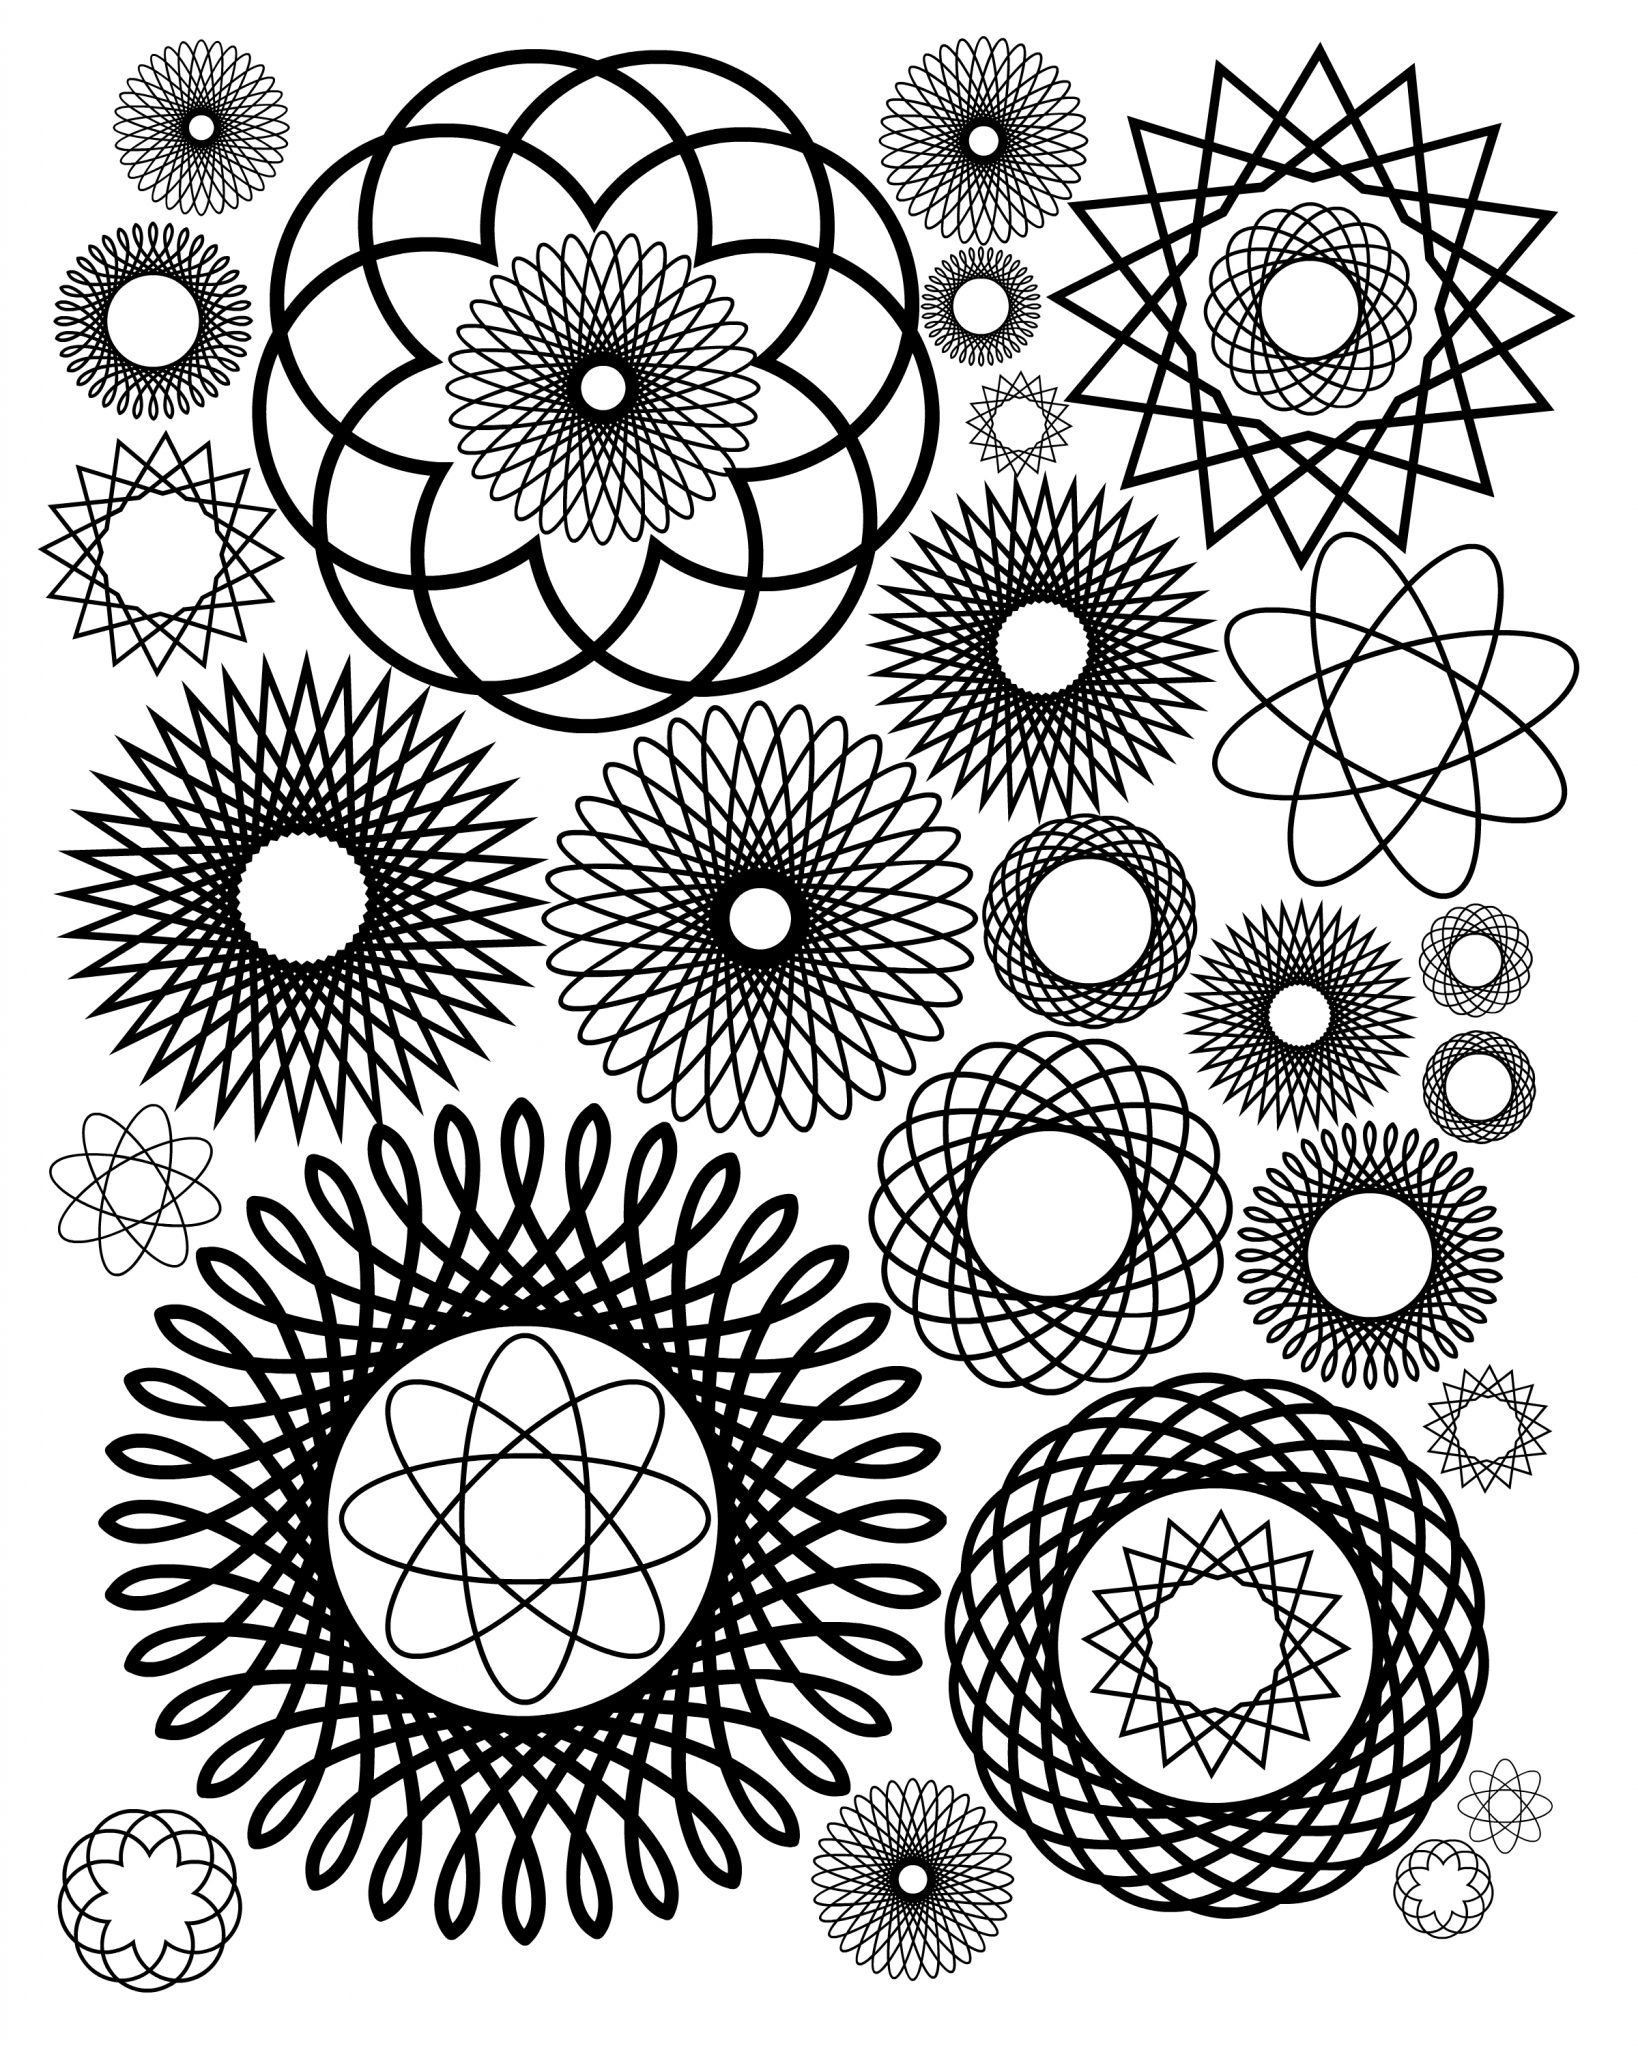 get free adult coloring pages to download at the country chic cottage - Coloring Pages For Paint Program